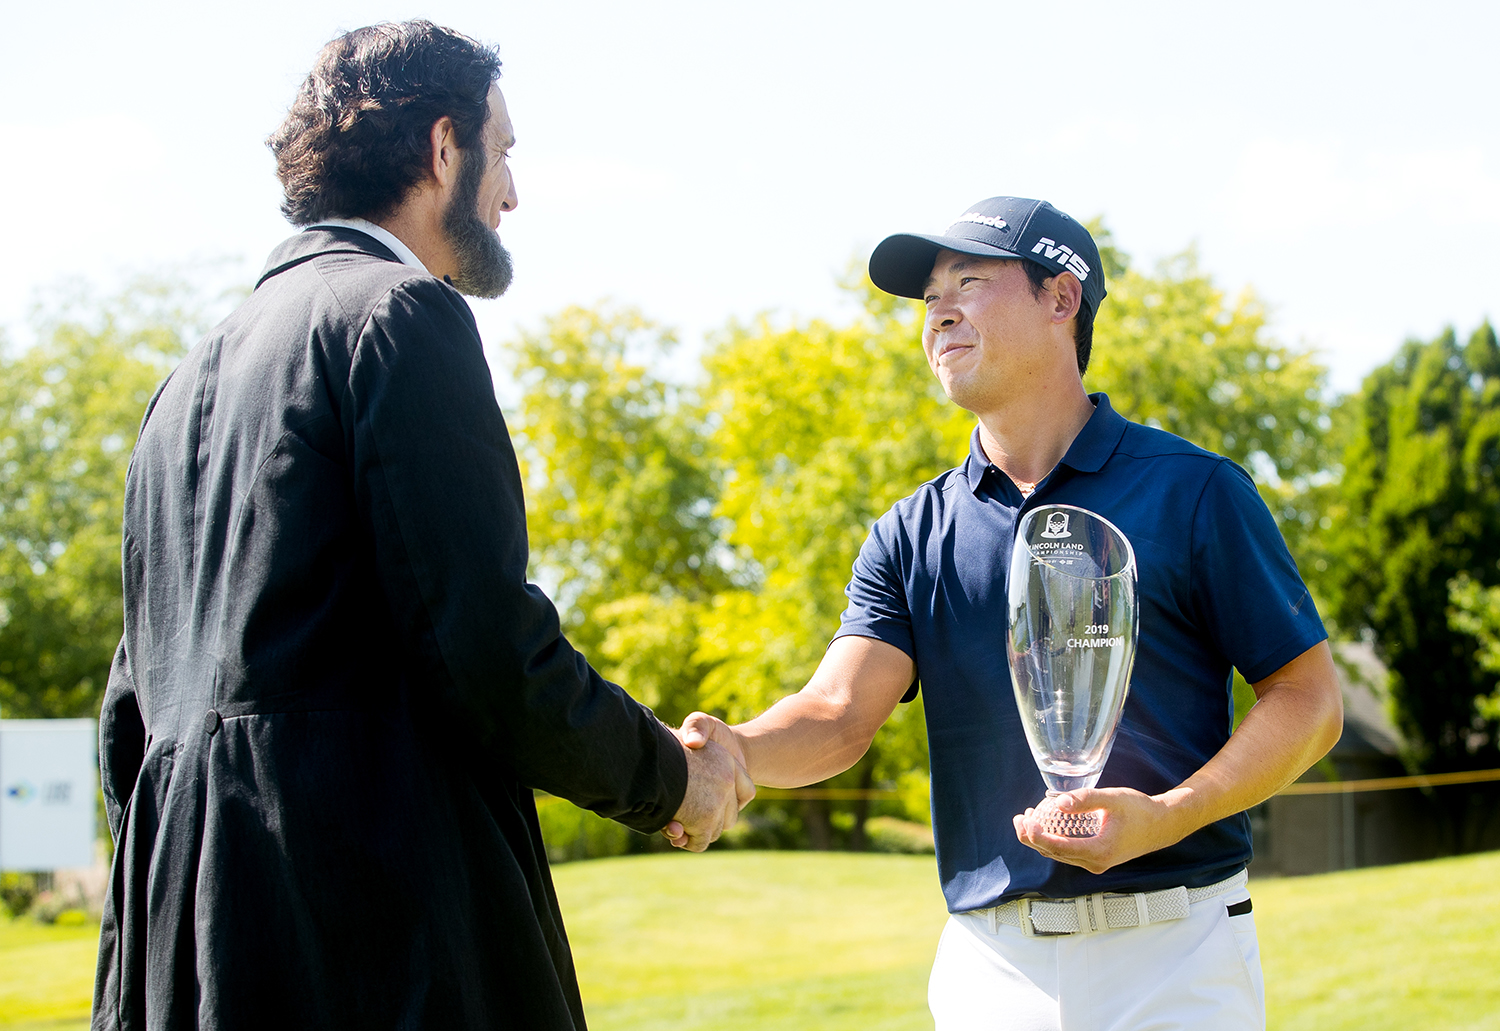 Randy Duncan, an Abraham Lincoln presenter, shakes hands with the 2019 Web.com Tour's Land of Lincoln Championship winner Xinjun Zhang on the 18th green at Panther Creek Country Club golf course Sunday, June 16, 2019. Zhang survived a three-hole playoff against Dylan Wu to earn his second tour win this year. [Ted Schurter/The State Journal-Register]